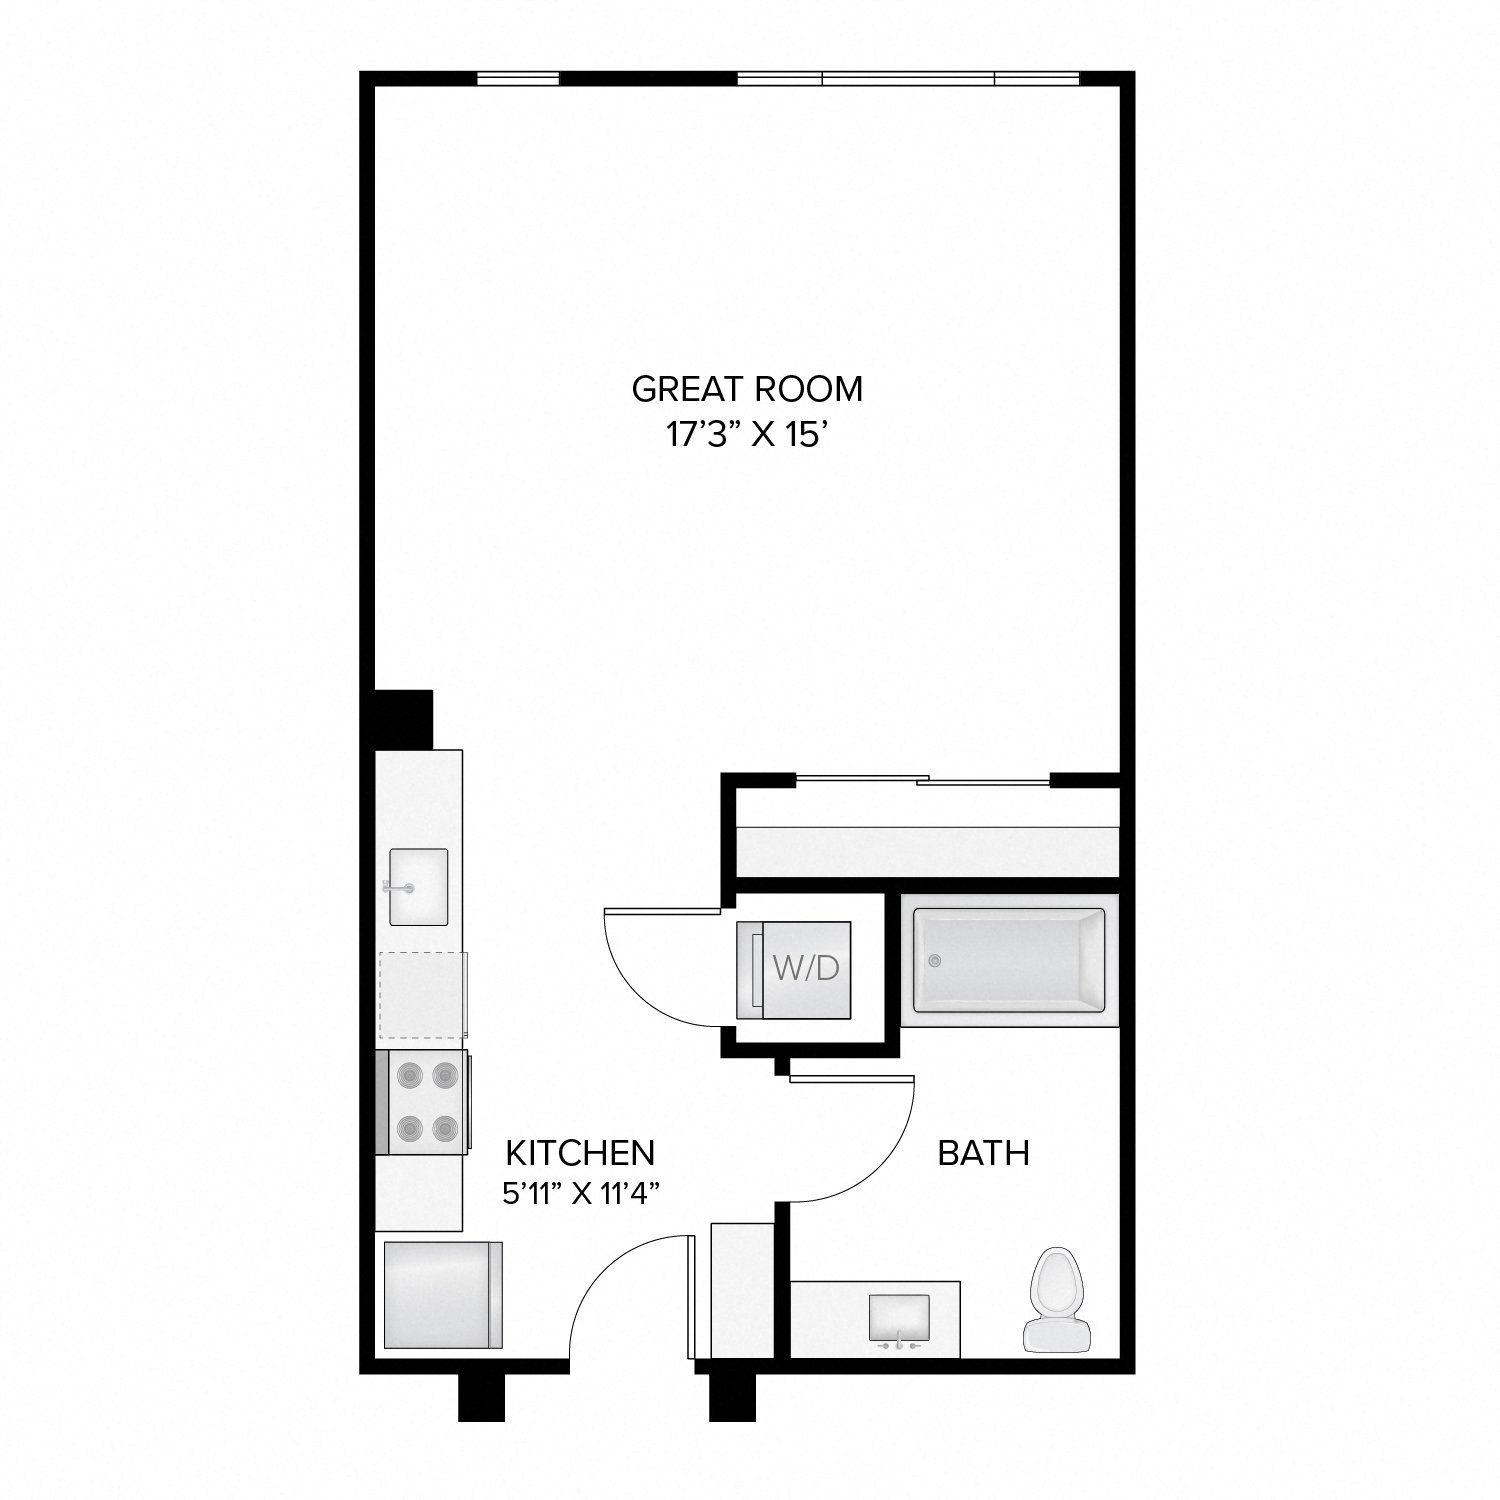 Diagram of the Harrison floor plan. Studio apartment with one bathroom, a living area, kitchen, and washer-dryer.